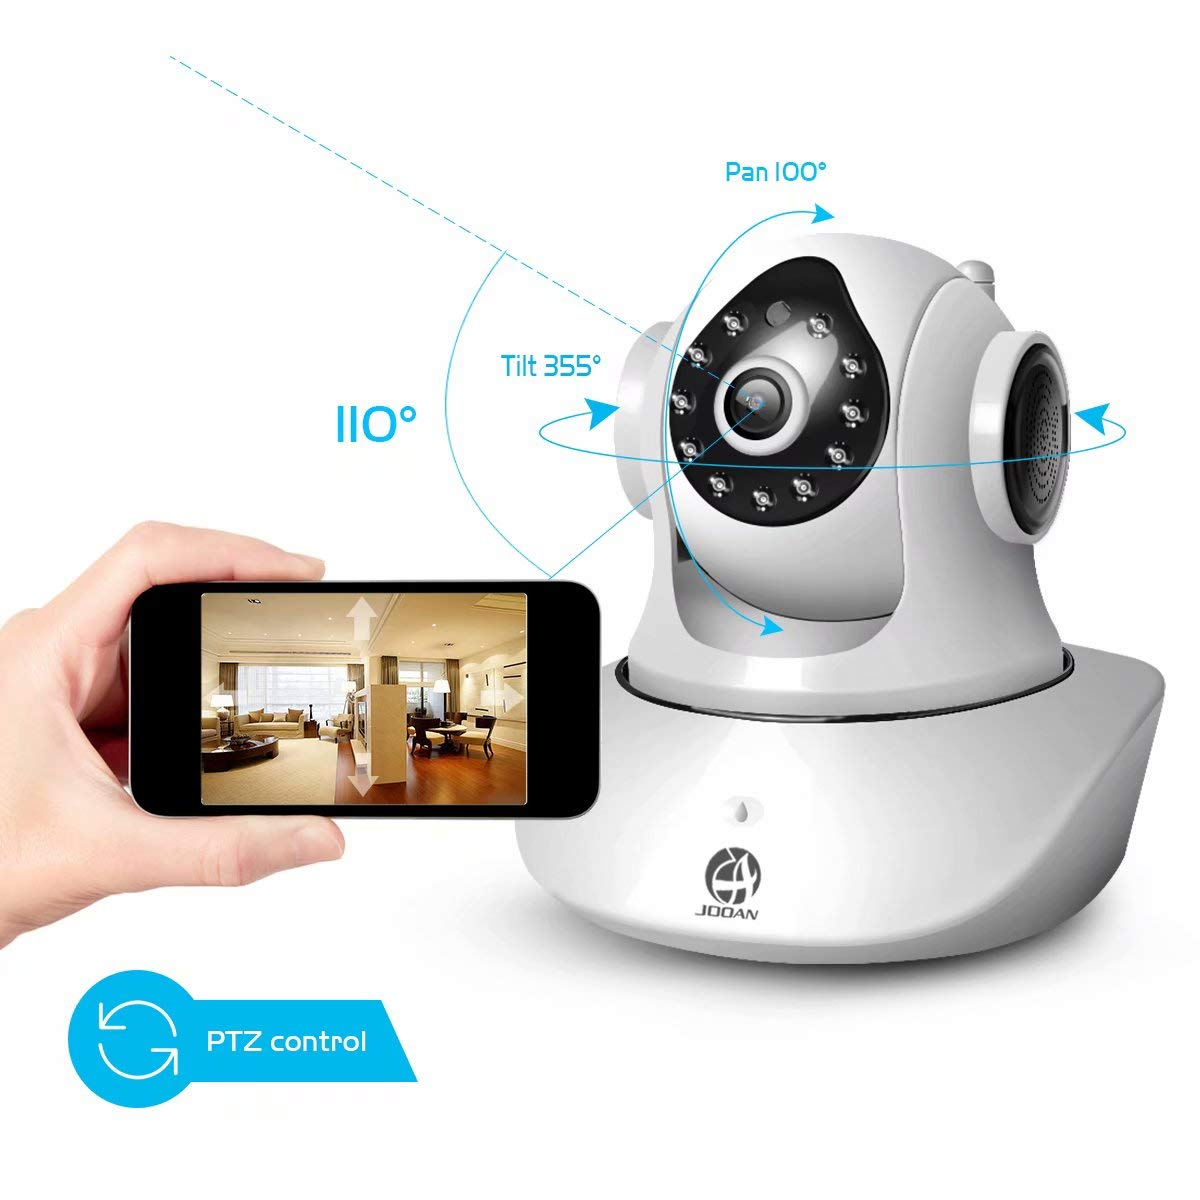 JOOAN WiFi Security Camera Wireless IP Camera with Two-Way Audio Night Vision 720P Camera for Pet Baby Monitor by JOOAN (Image #5)